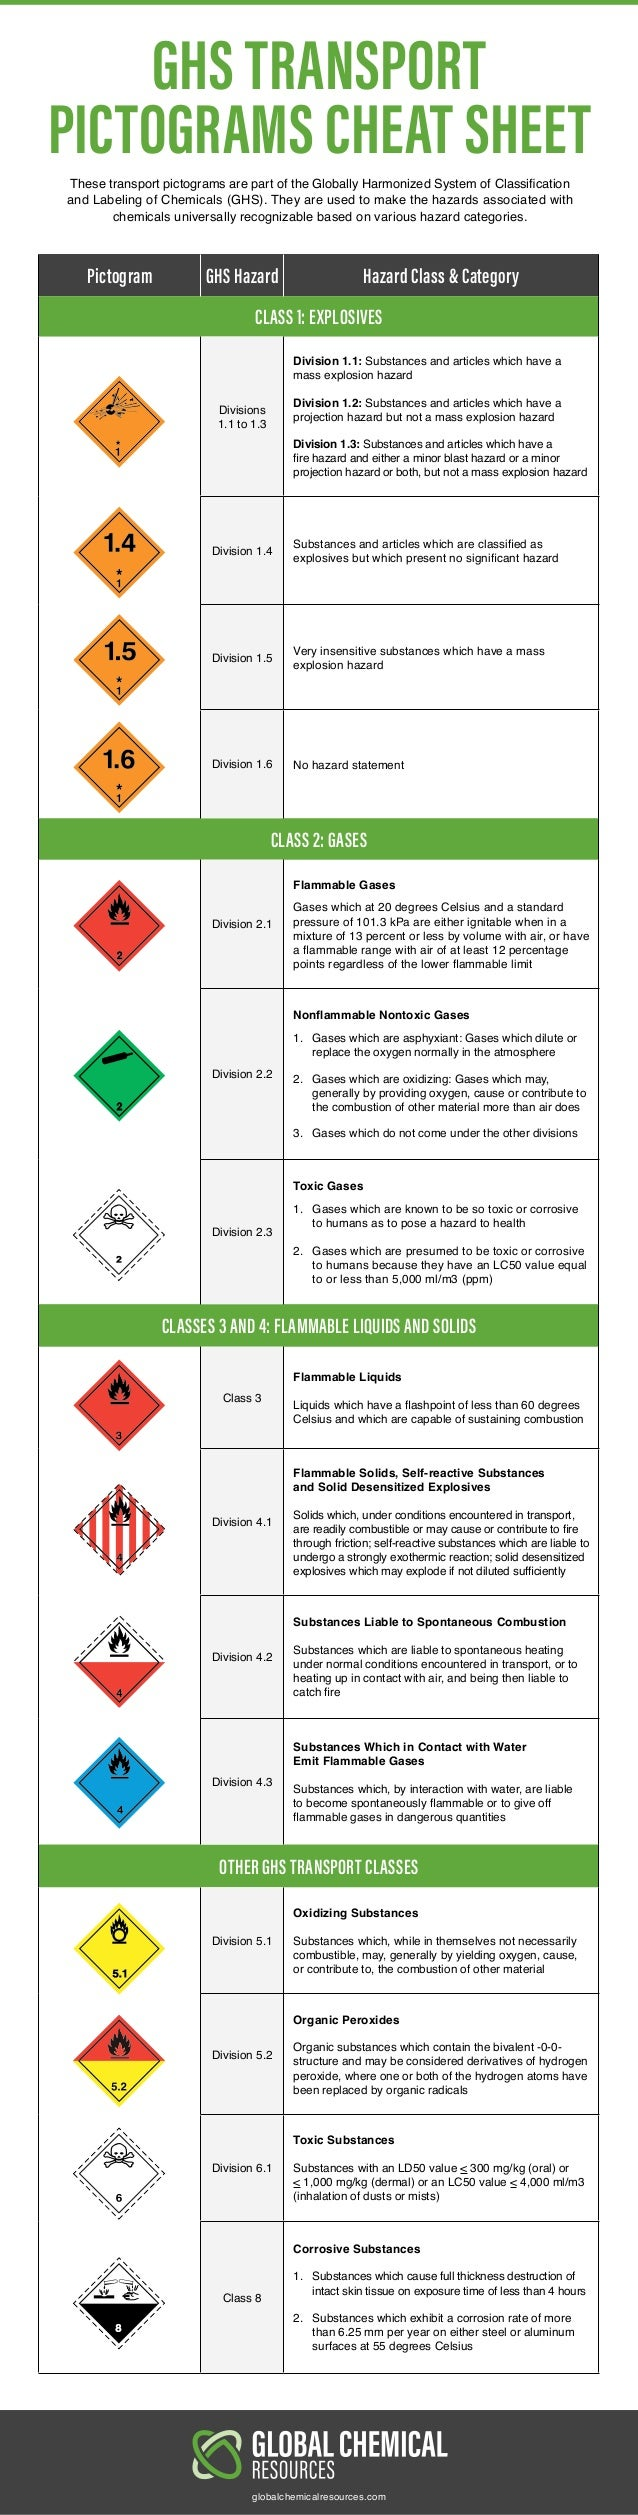 GHS TRANSPORT PICTOGRAMS CHEAT SHEET Pictogram GHS Hazard Hazard Class & Category CLASS 1: EXPLOSIVES Divisions 1.1 to 1.3...